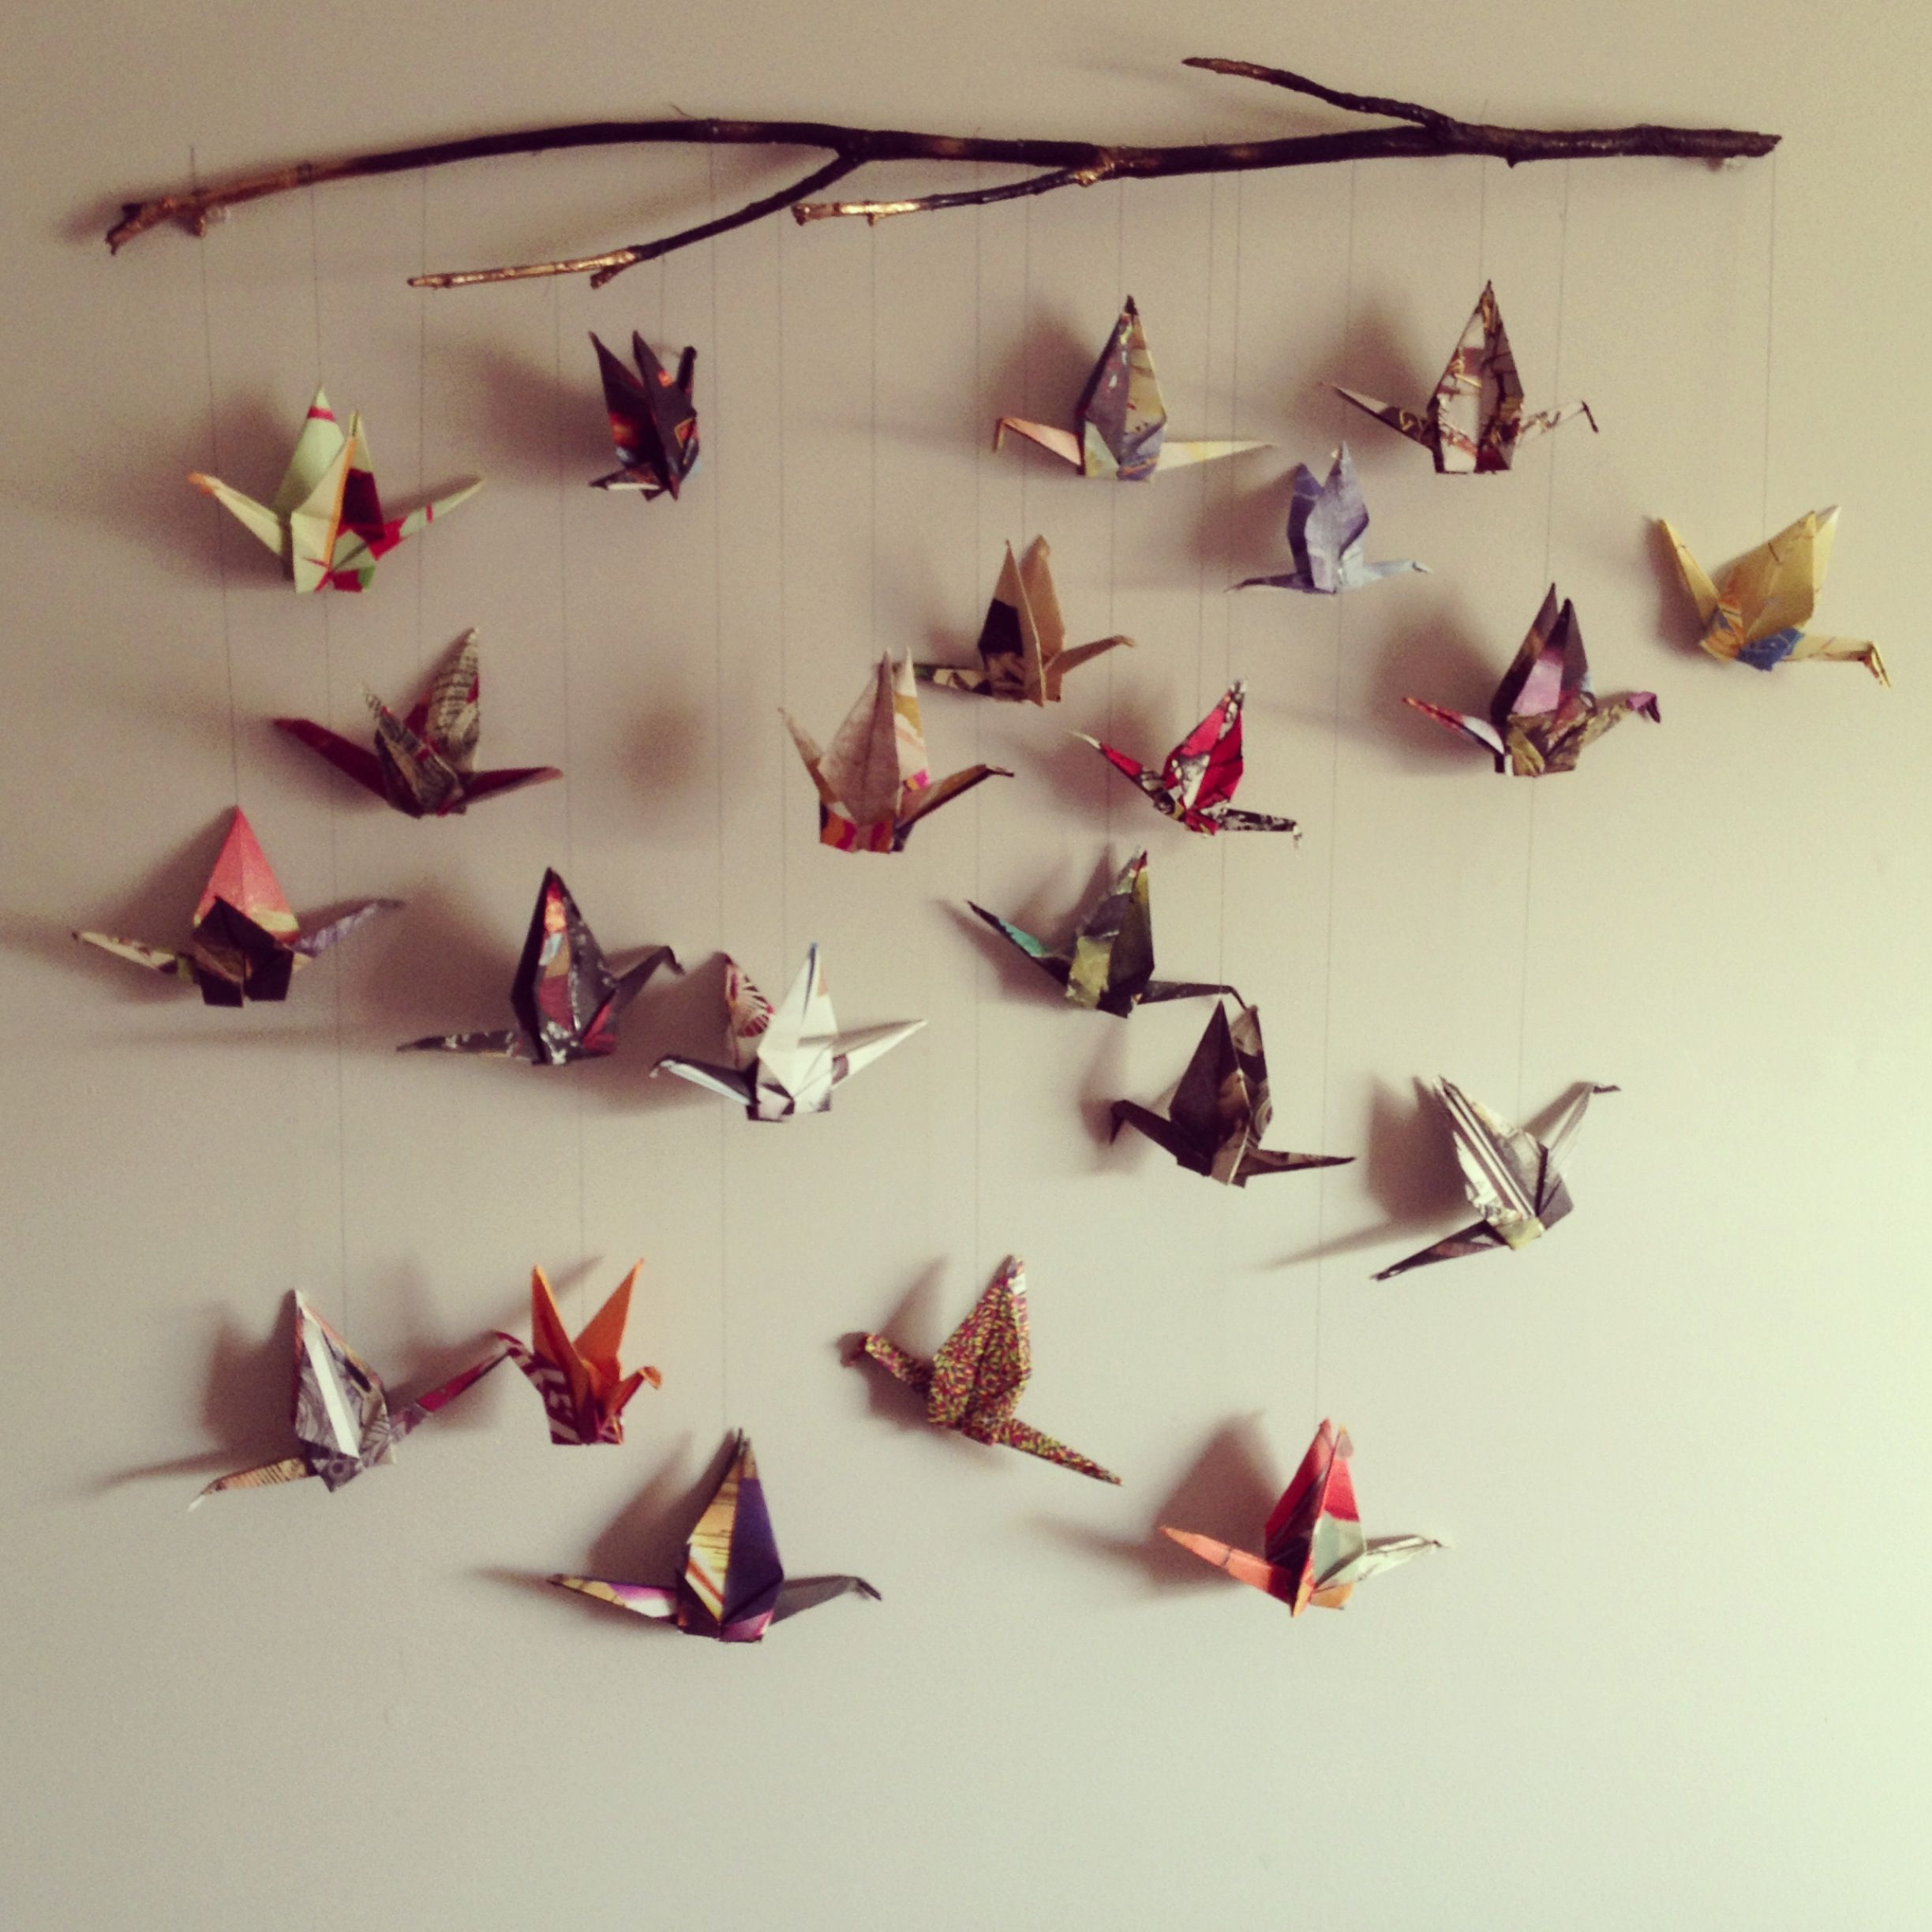 My Version Of The Paper Crane Mobile Spray Painted Branch And Beautiful Cranes Next Step Make 1000 In A Year Papercrane Origami